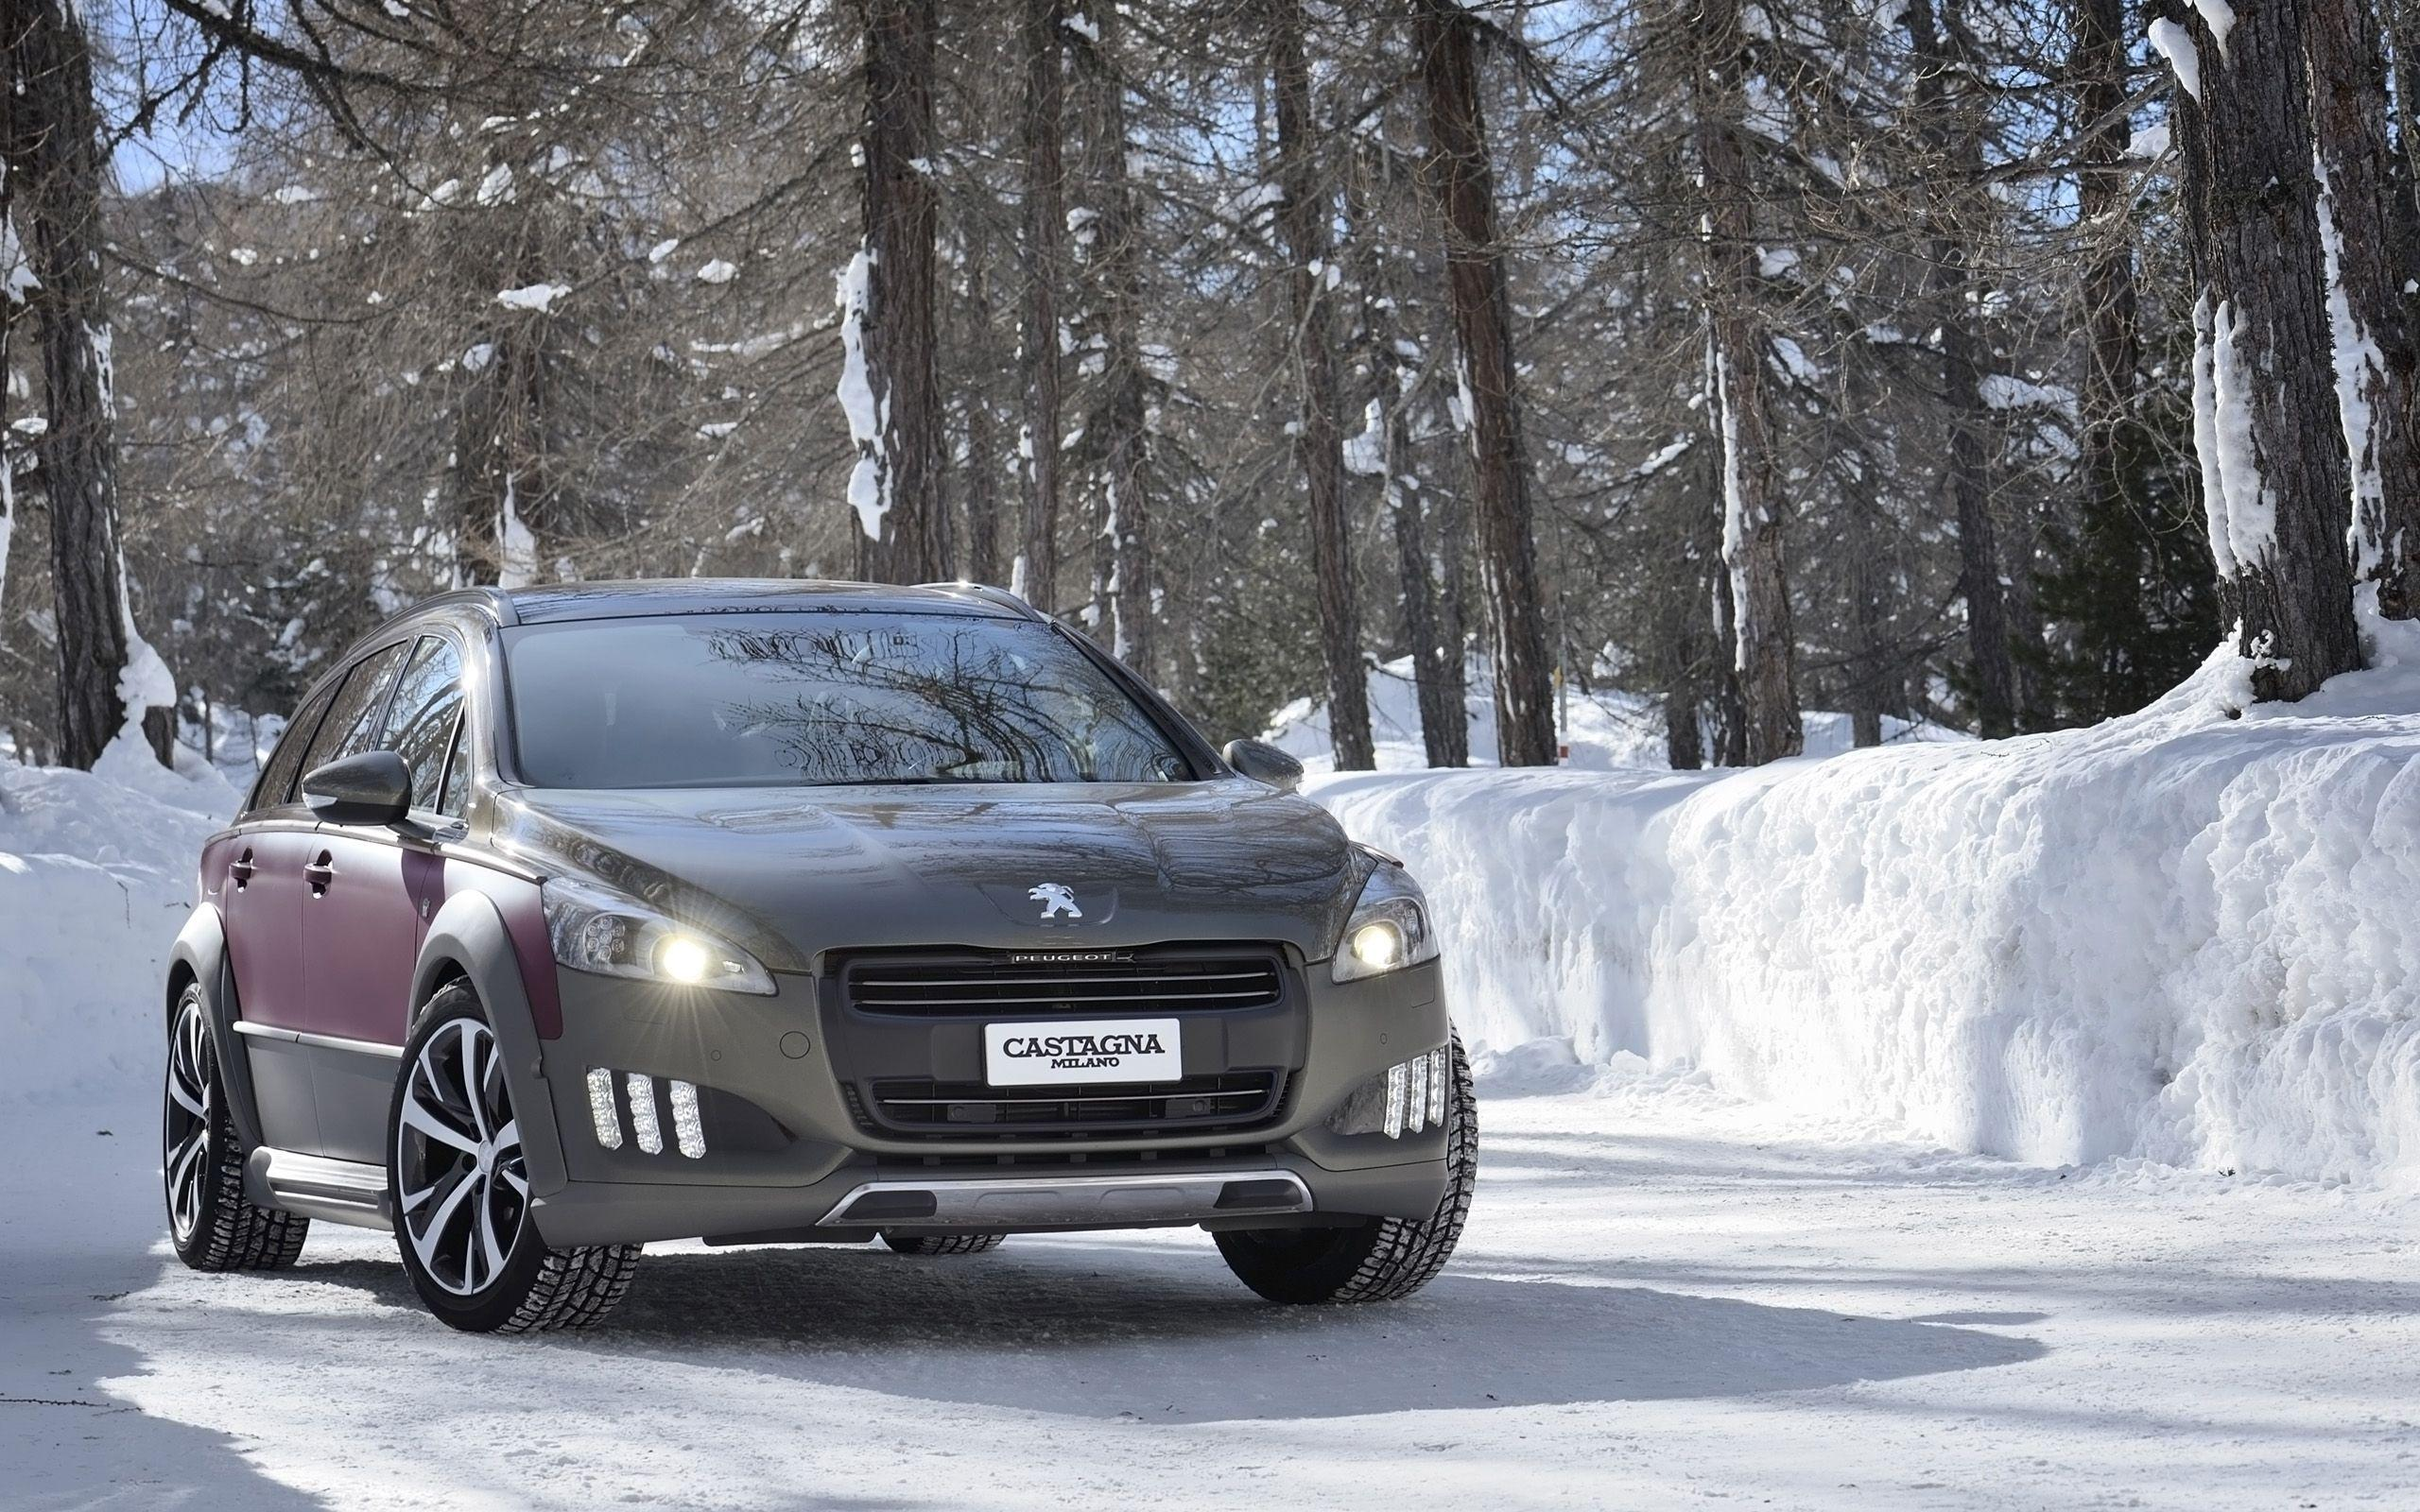 2014 Castagna Peugeot 508 RXH Wallpapers